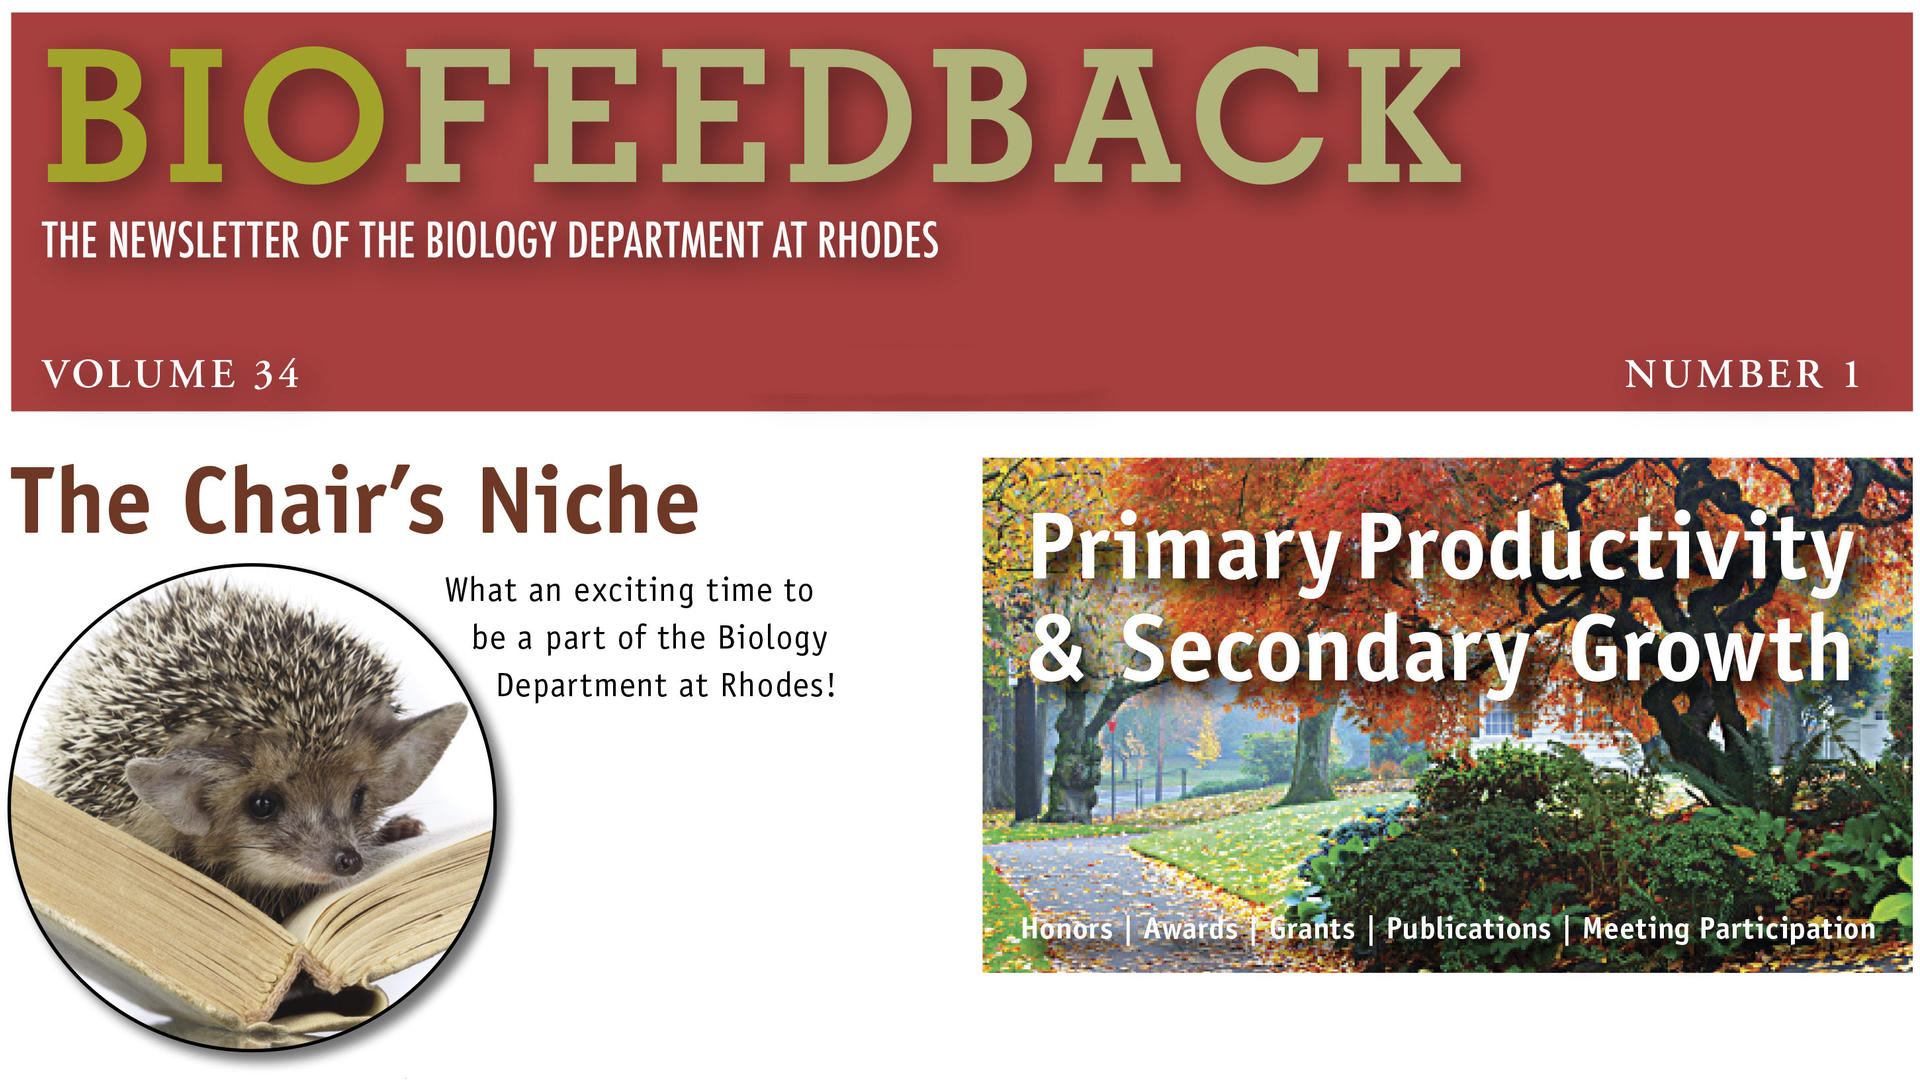 Biofeedback newsletter header